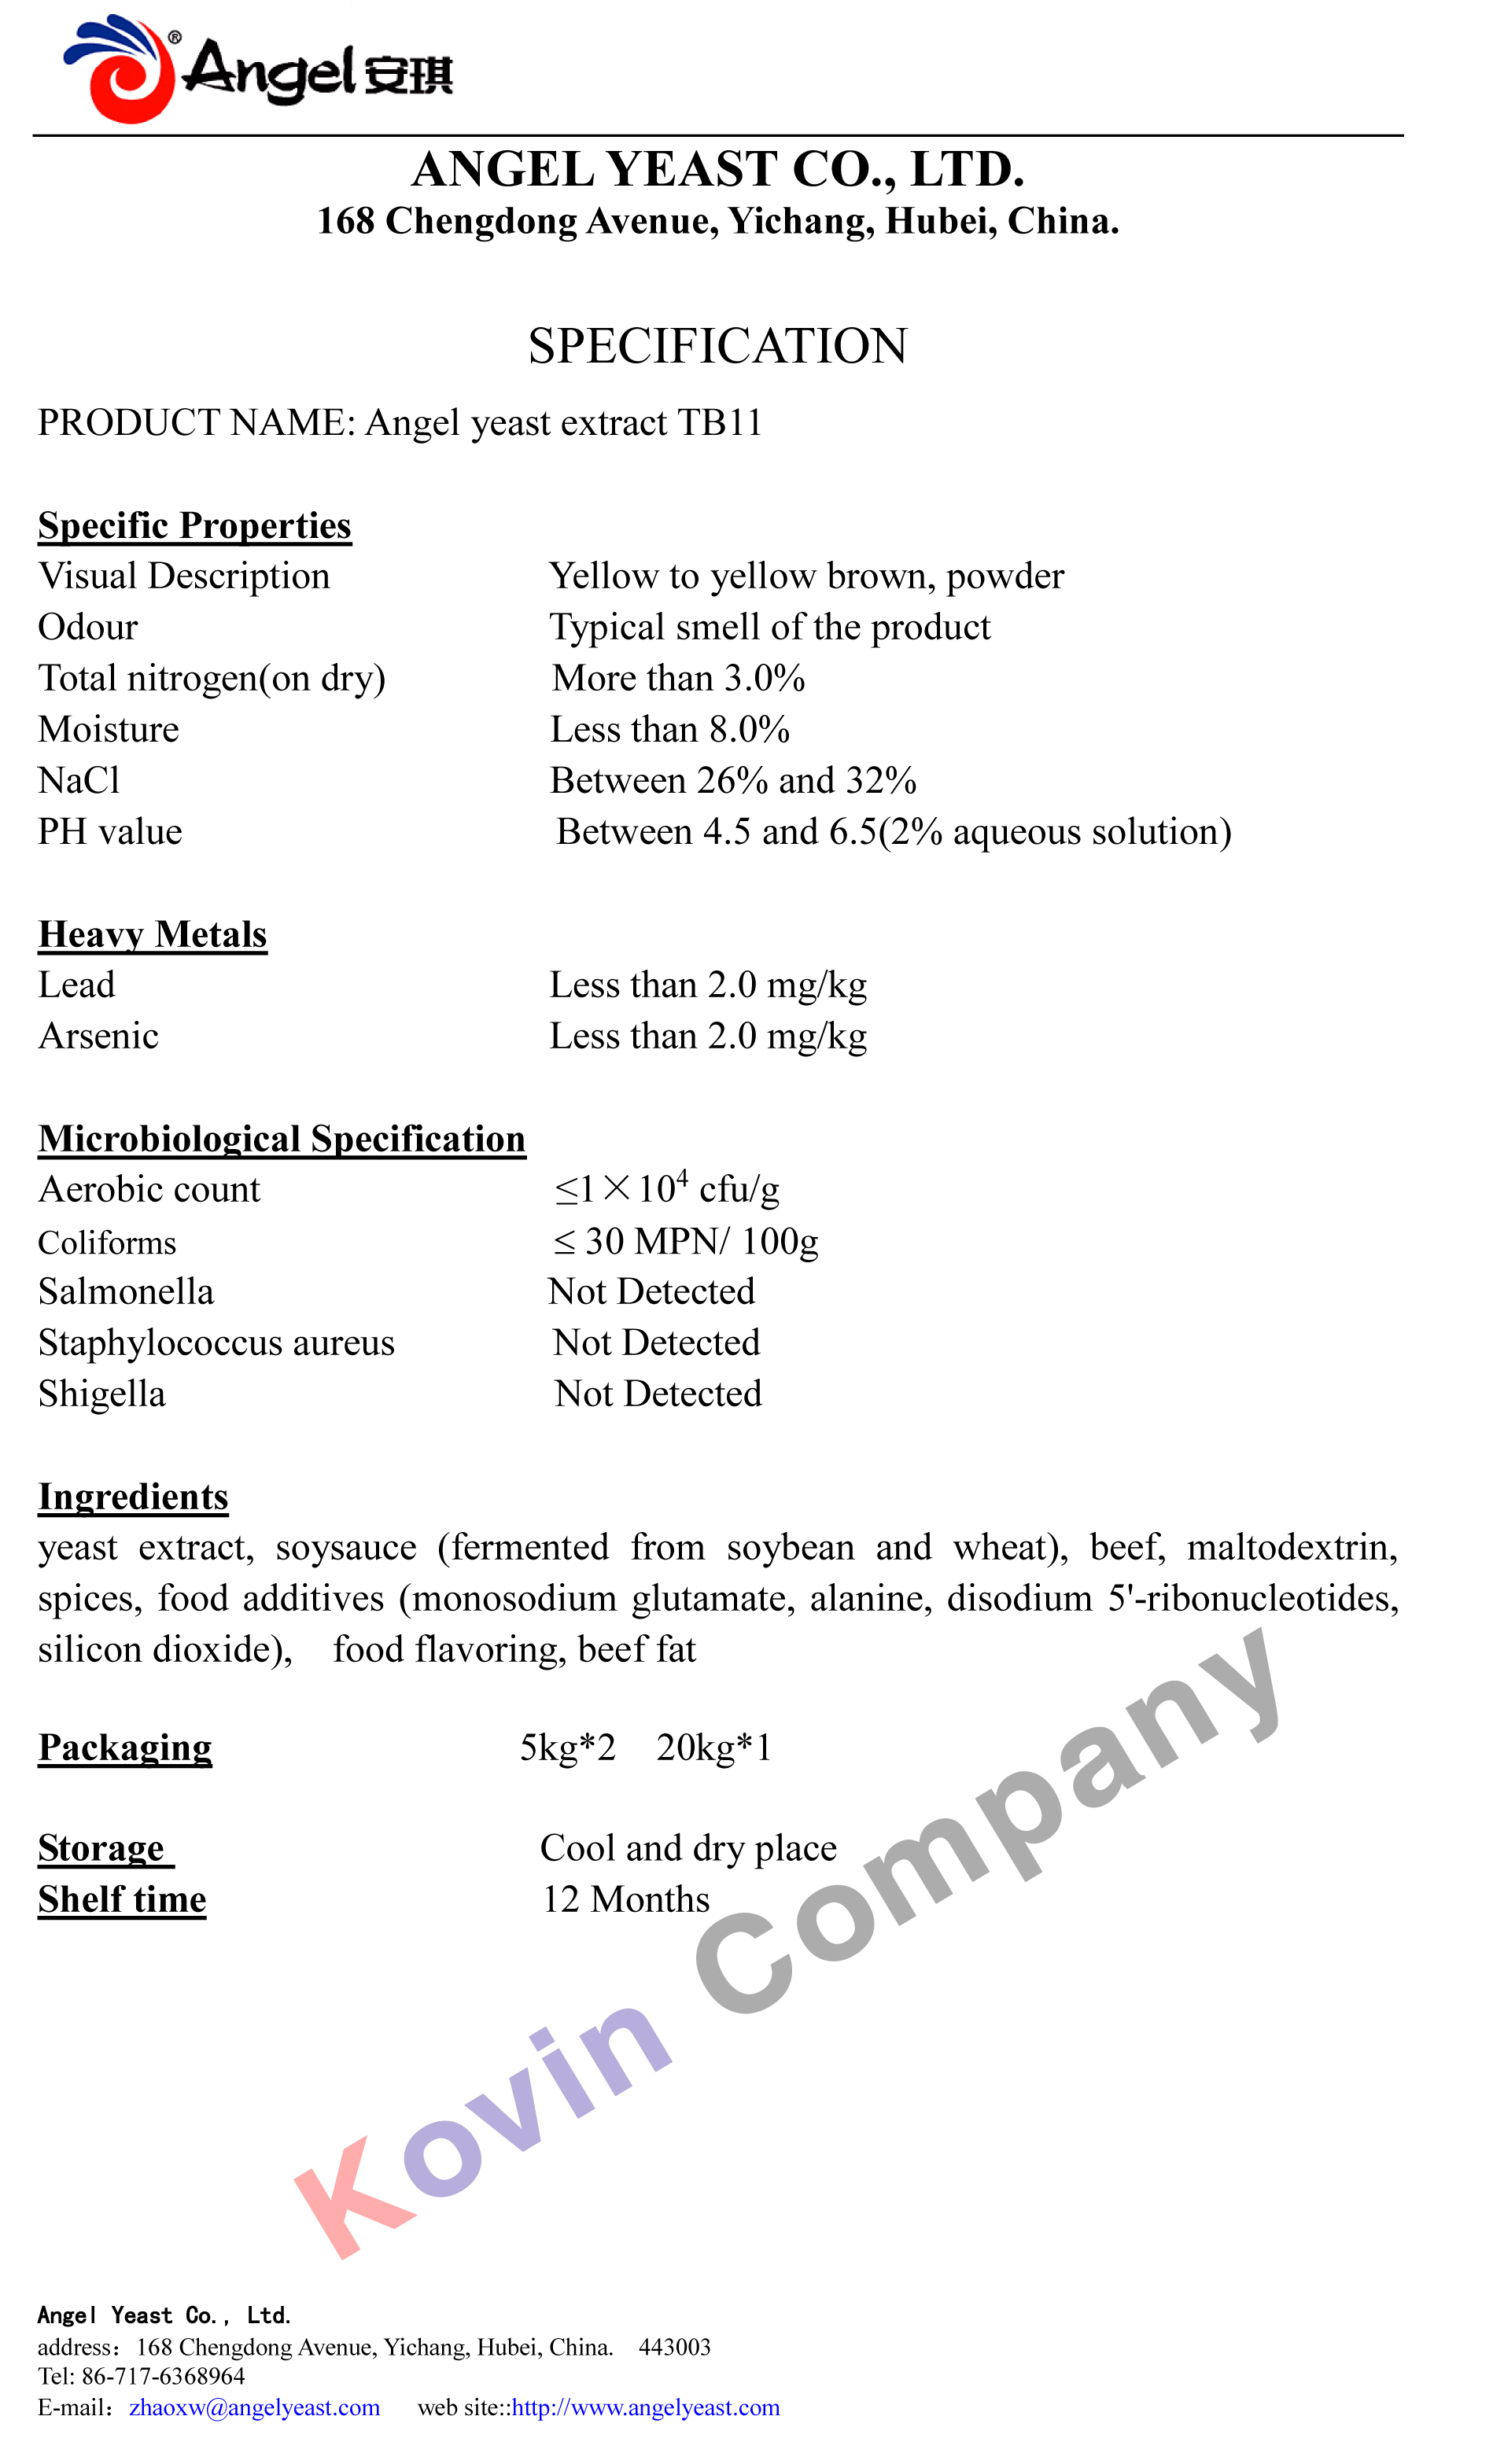 Yeast Extract TB11 Specification